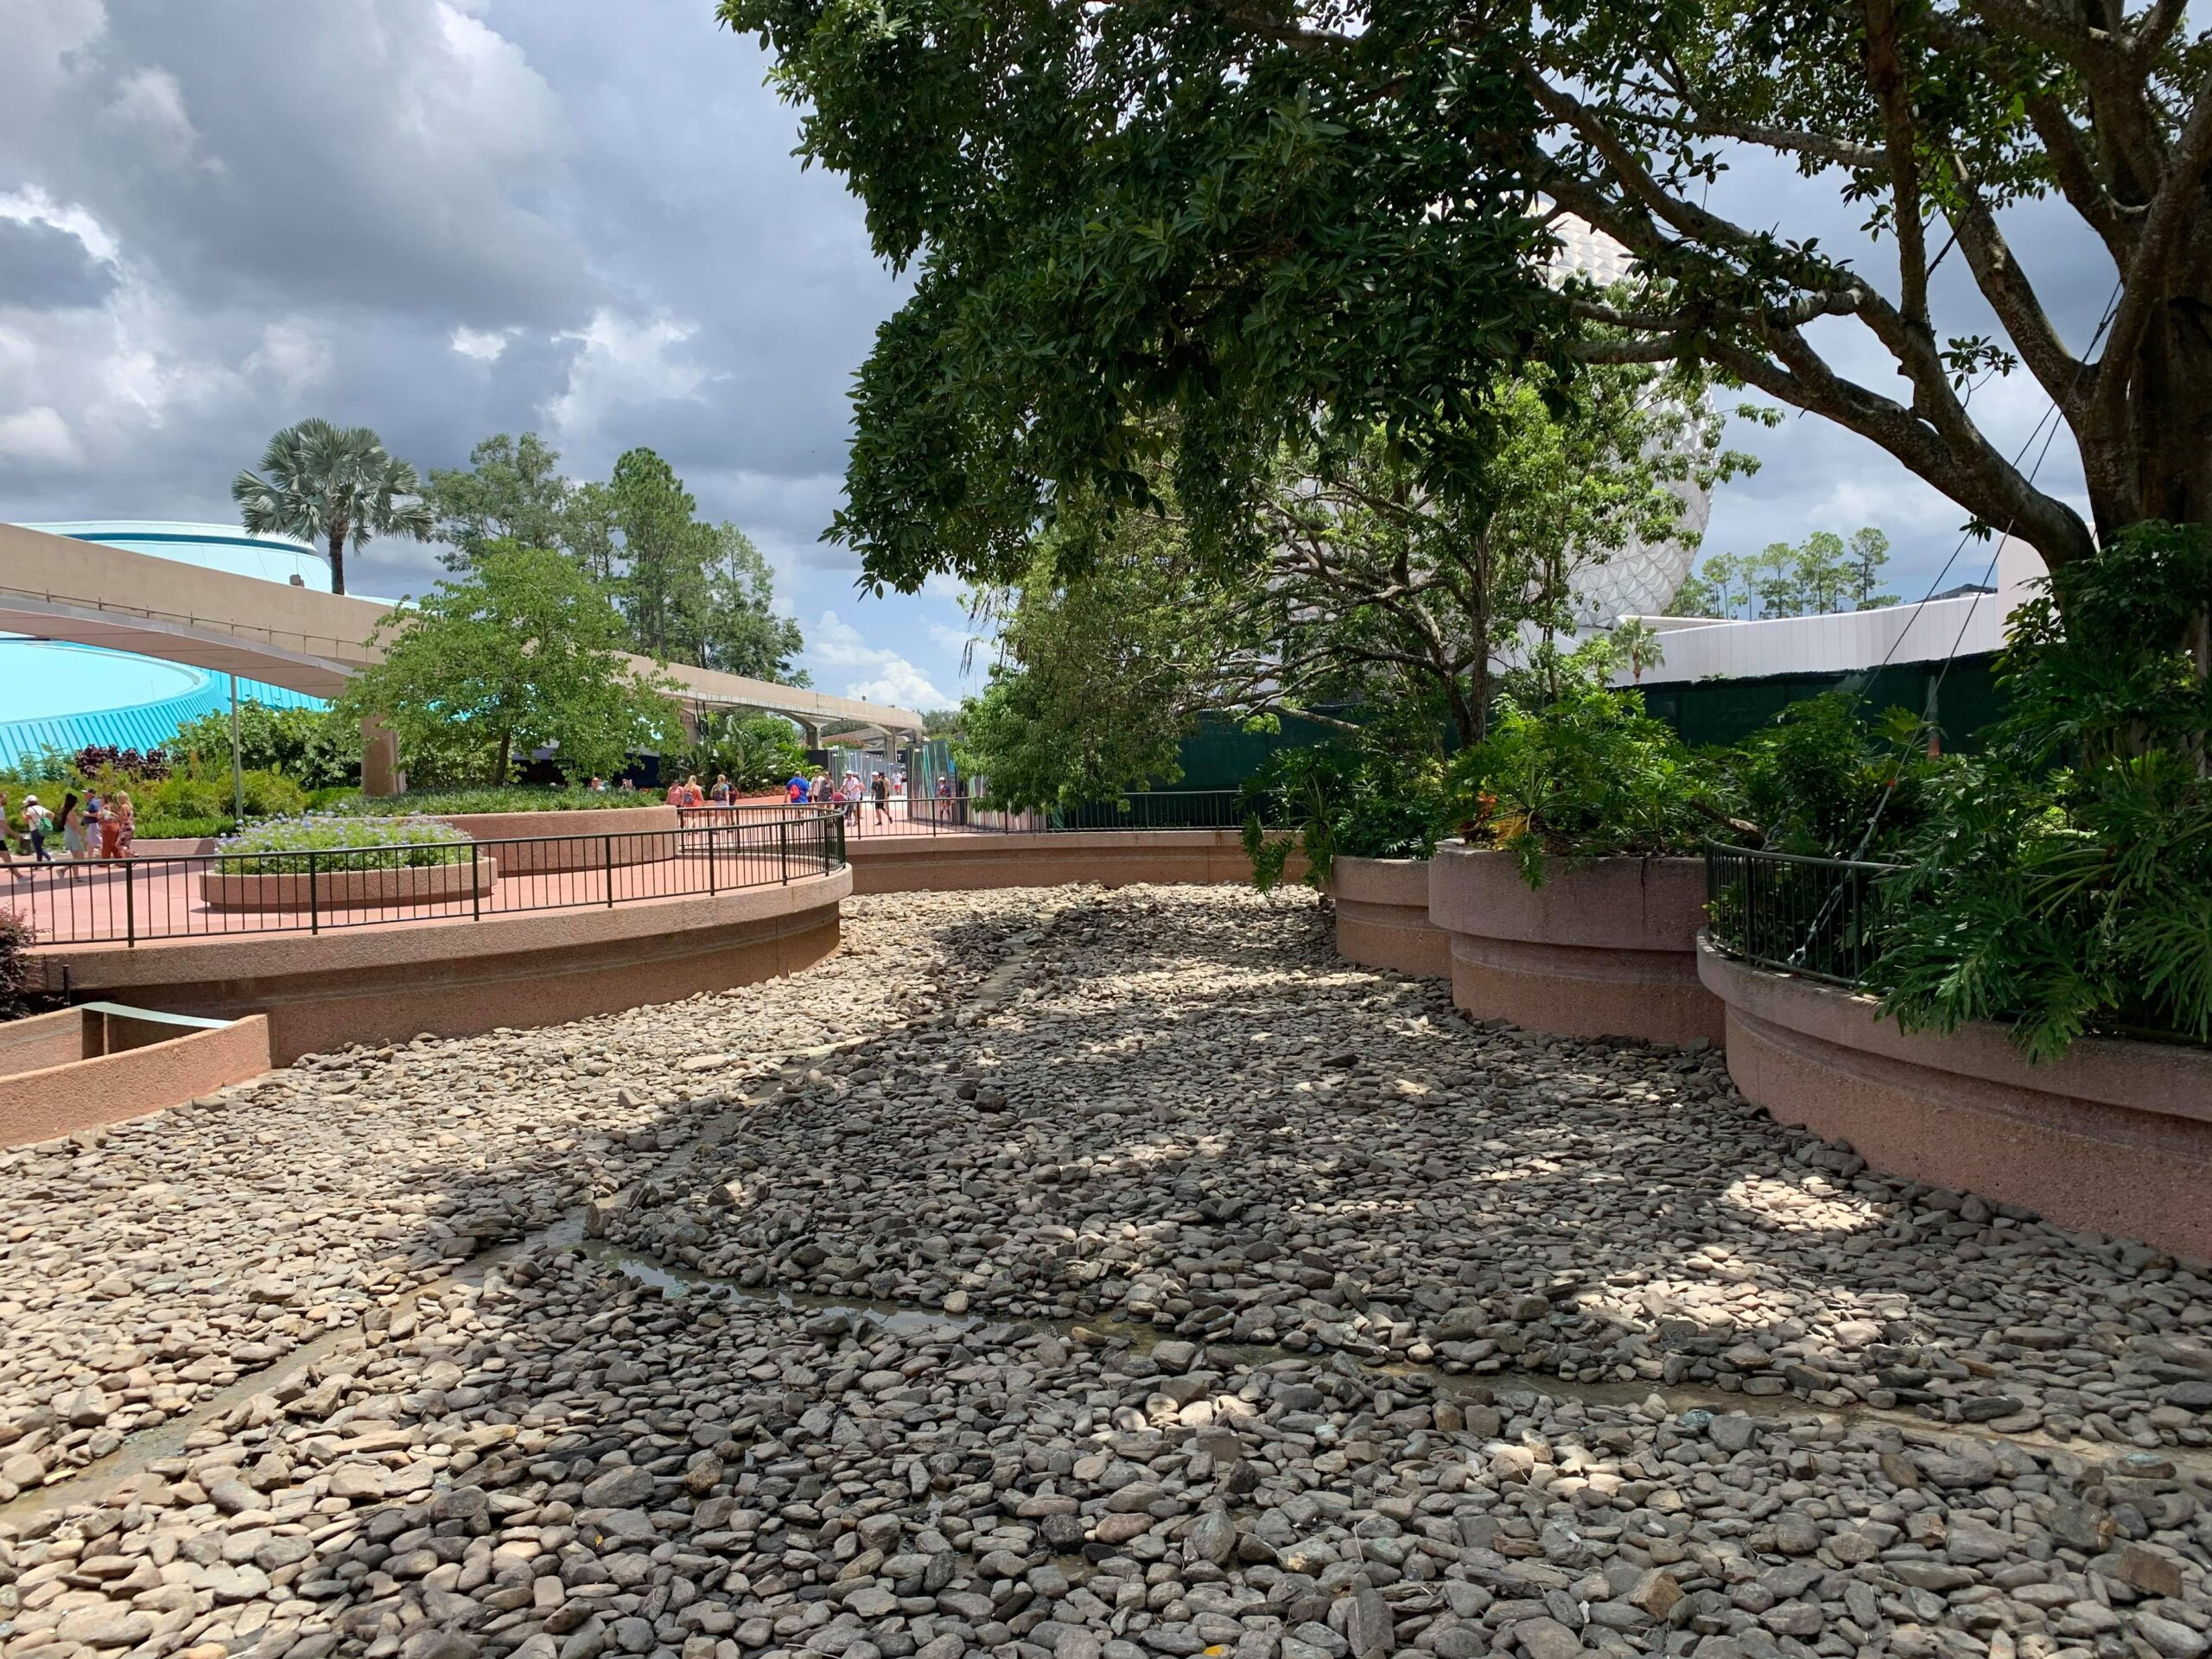 Epcot draining ponds as they prepare for Moana's Journey of Water 4